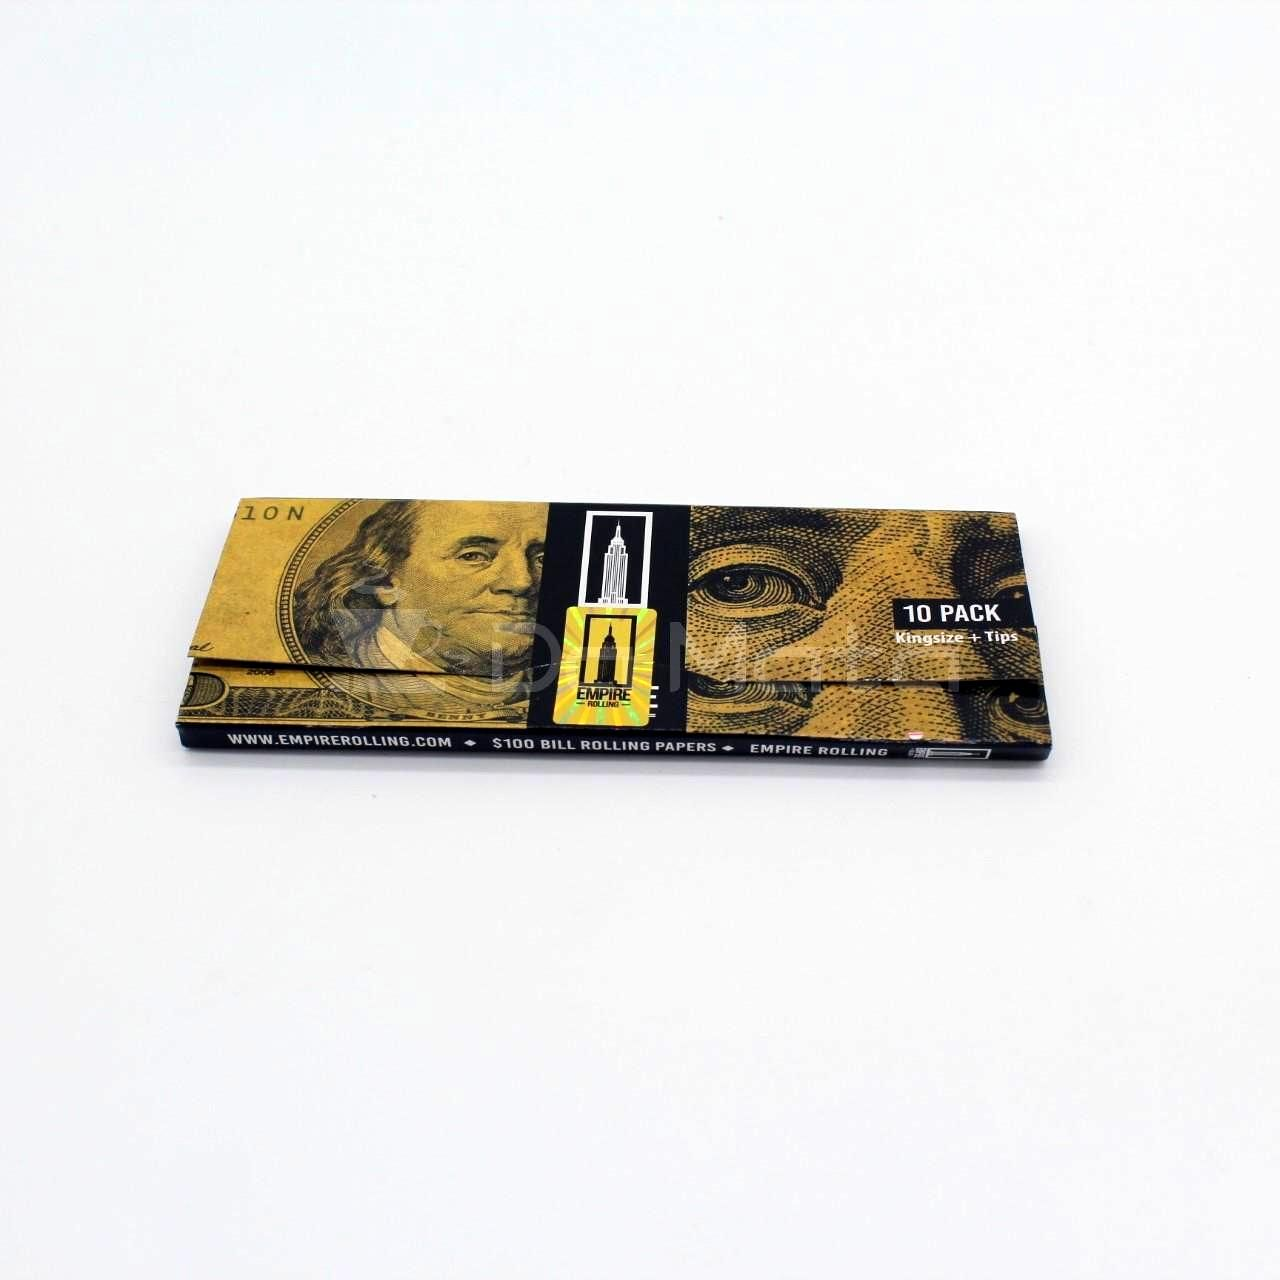 Empire Rolling Papers Seda Dolar